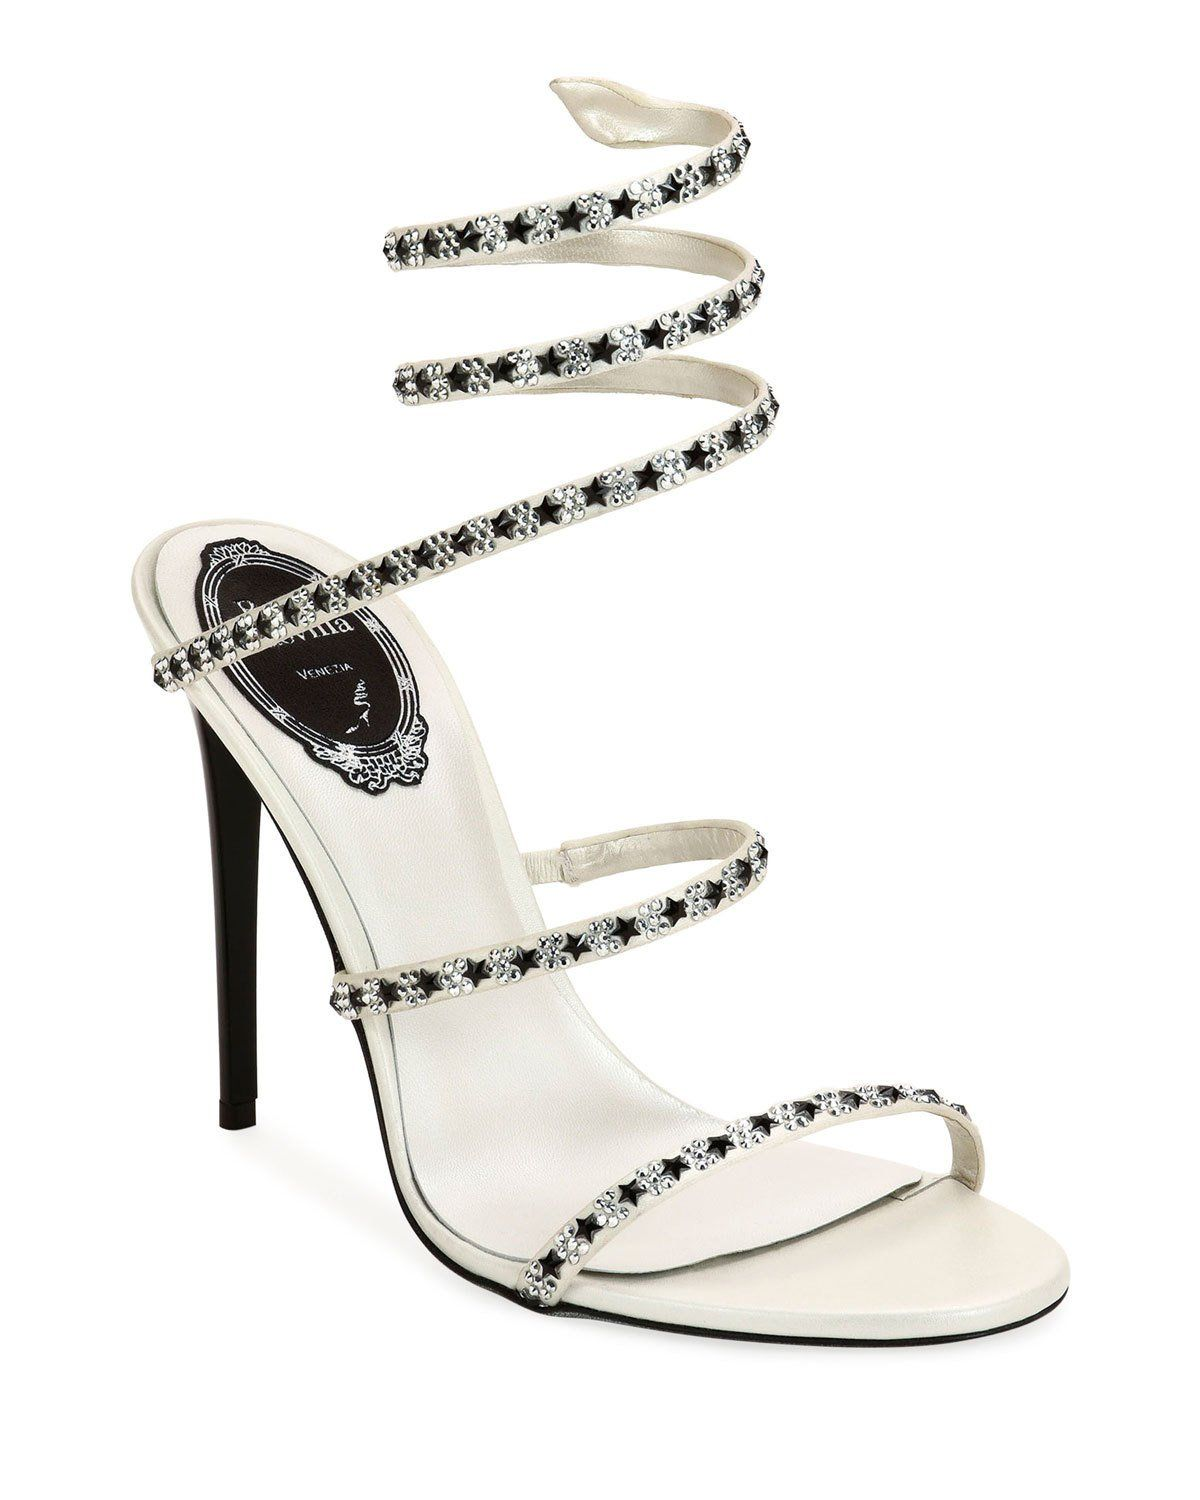 4fbbddd7b3 Rene Caovilla 105mm Snake-Ankle Sandals with Stars in 2019 | Shoes ...